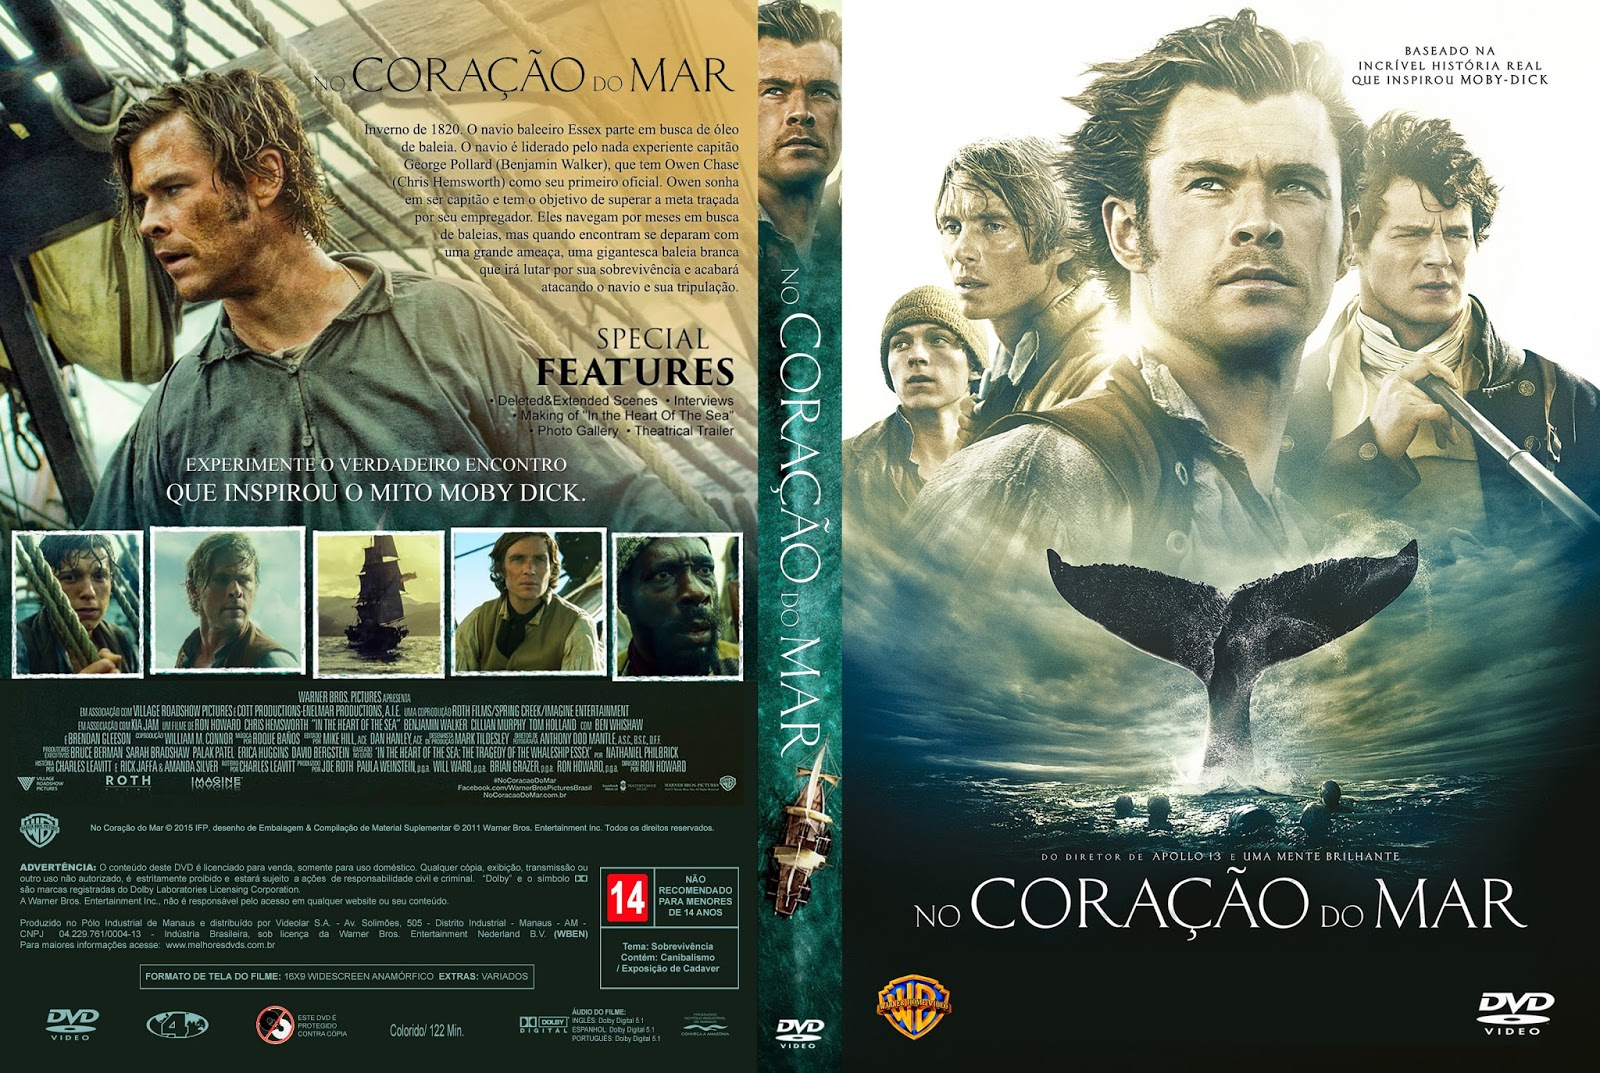 No Coração do Mar BDRip XviD Dual Áudio No 2BCora 25C3 25A7 25C3 25A3o 2Bdo 2BMar 2BBDRip 2B  2BXANDAODOWNLOAD